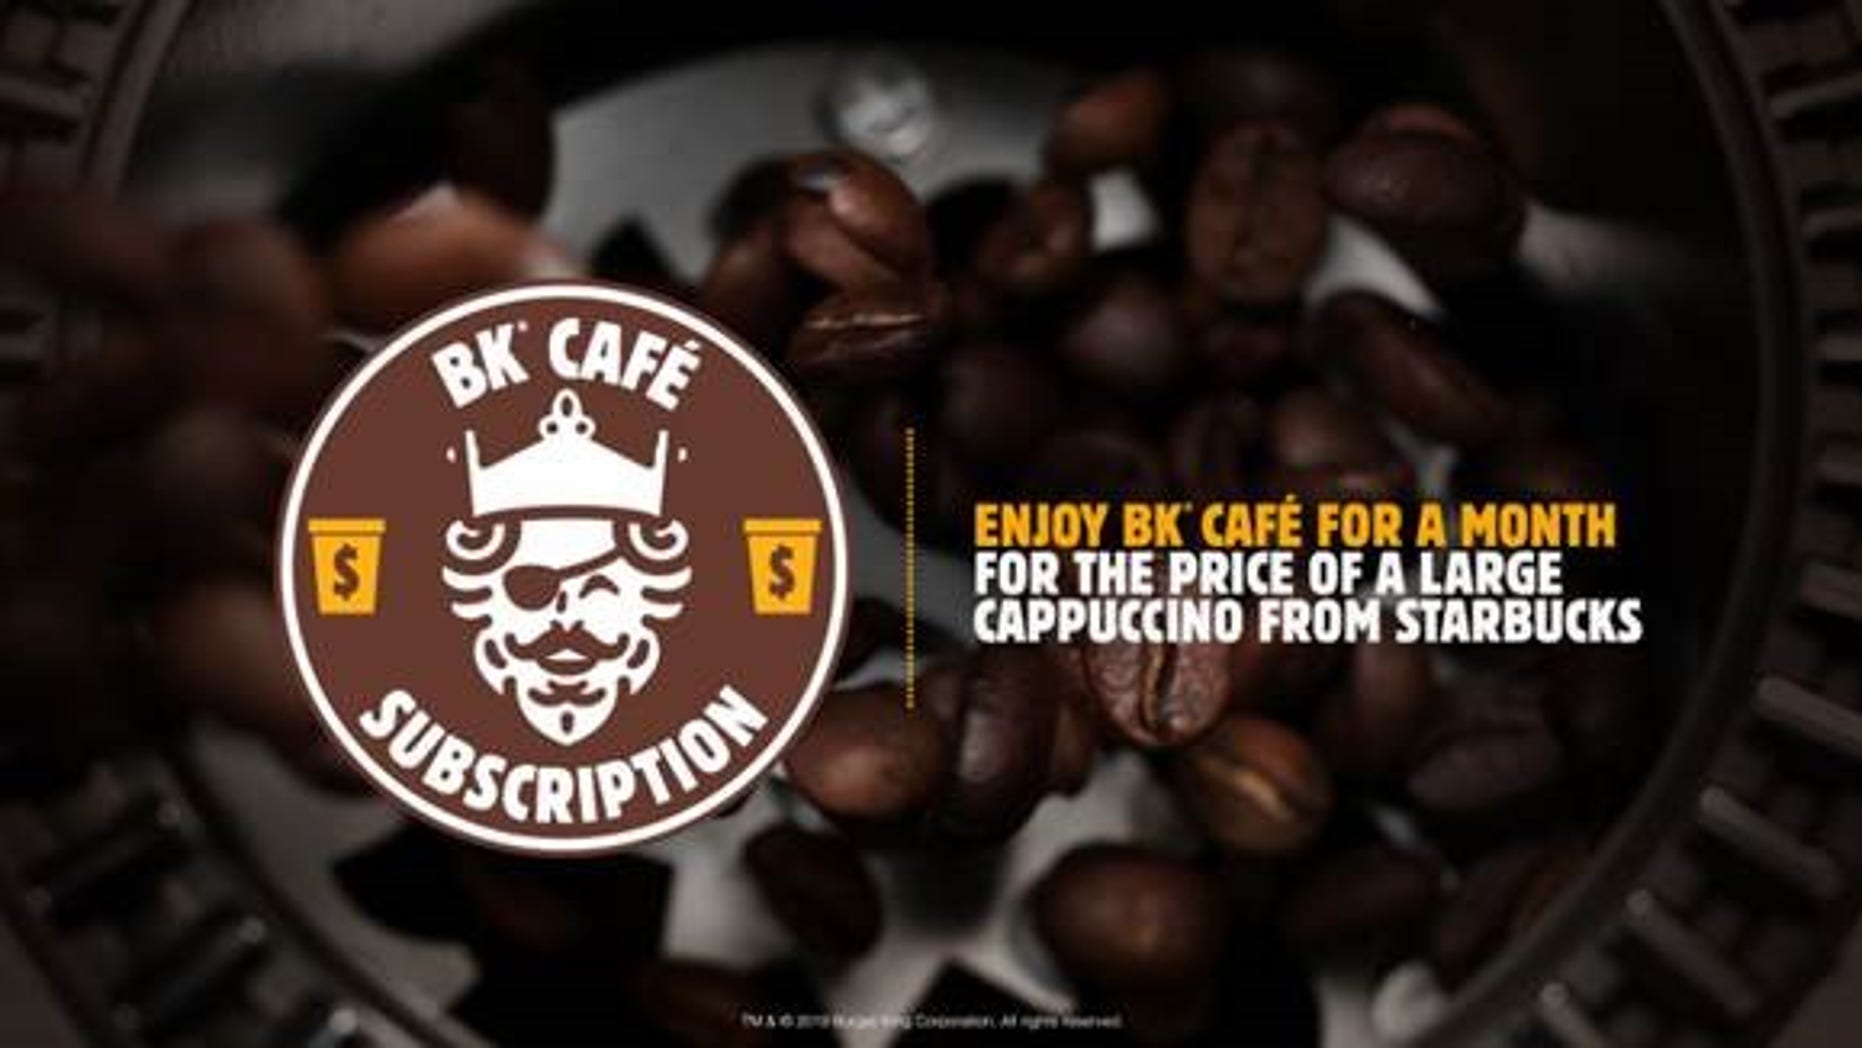 The BK Café Coffee Subscription rolled out last week and offers guests a brewed small cup of coffee every day, at anytime.